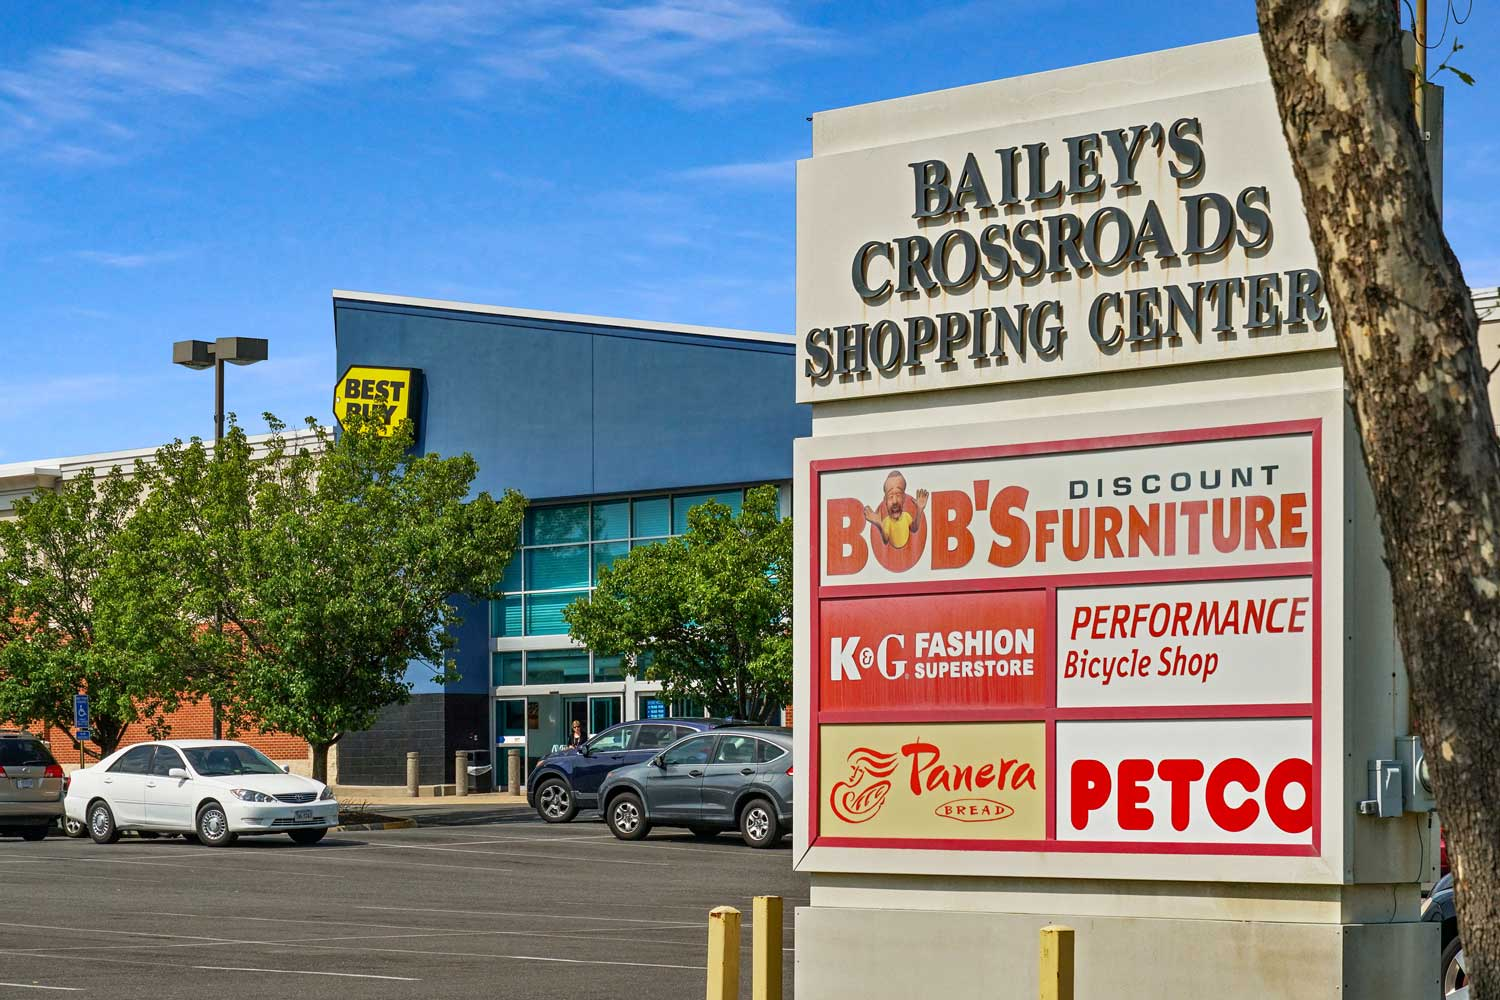 Bailey's Crossroads Shopping Center 5 minutes from Barcroft Plaza Apartments